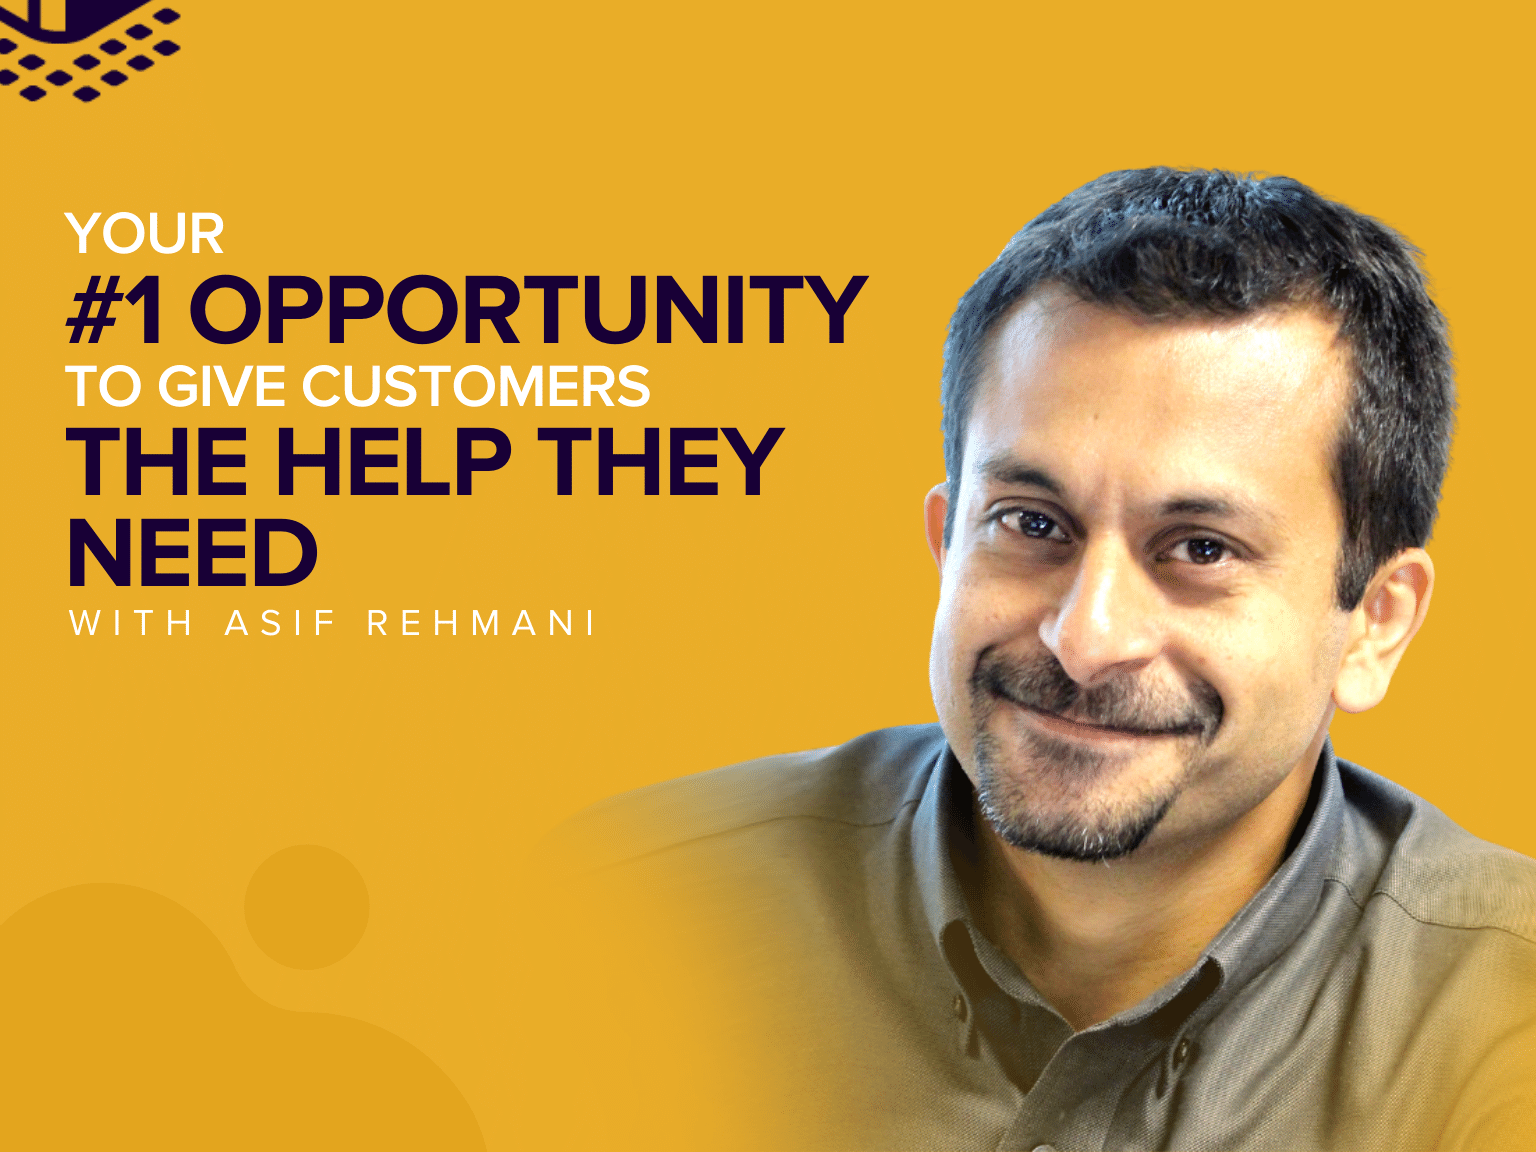 Your #1 Opportunity to Give Customers The Help They Need with Asif Rehmani